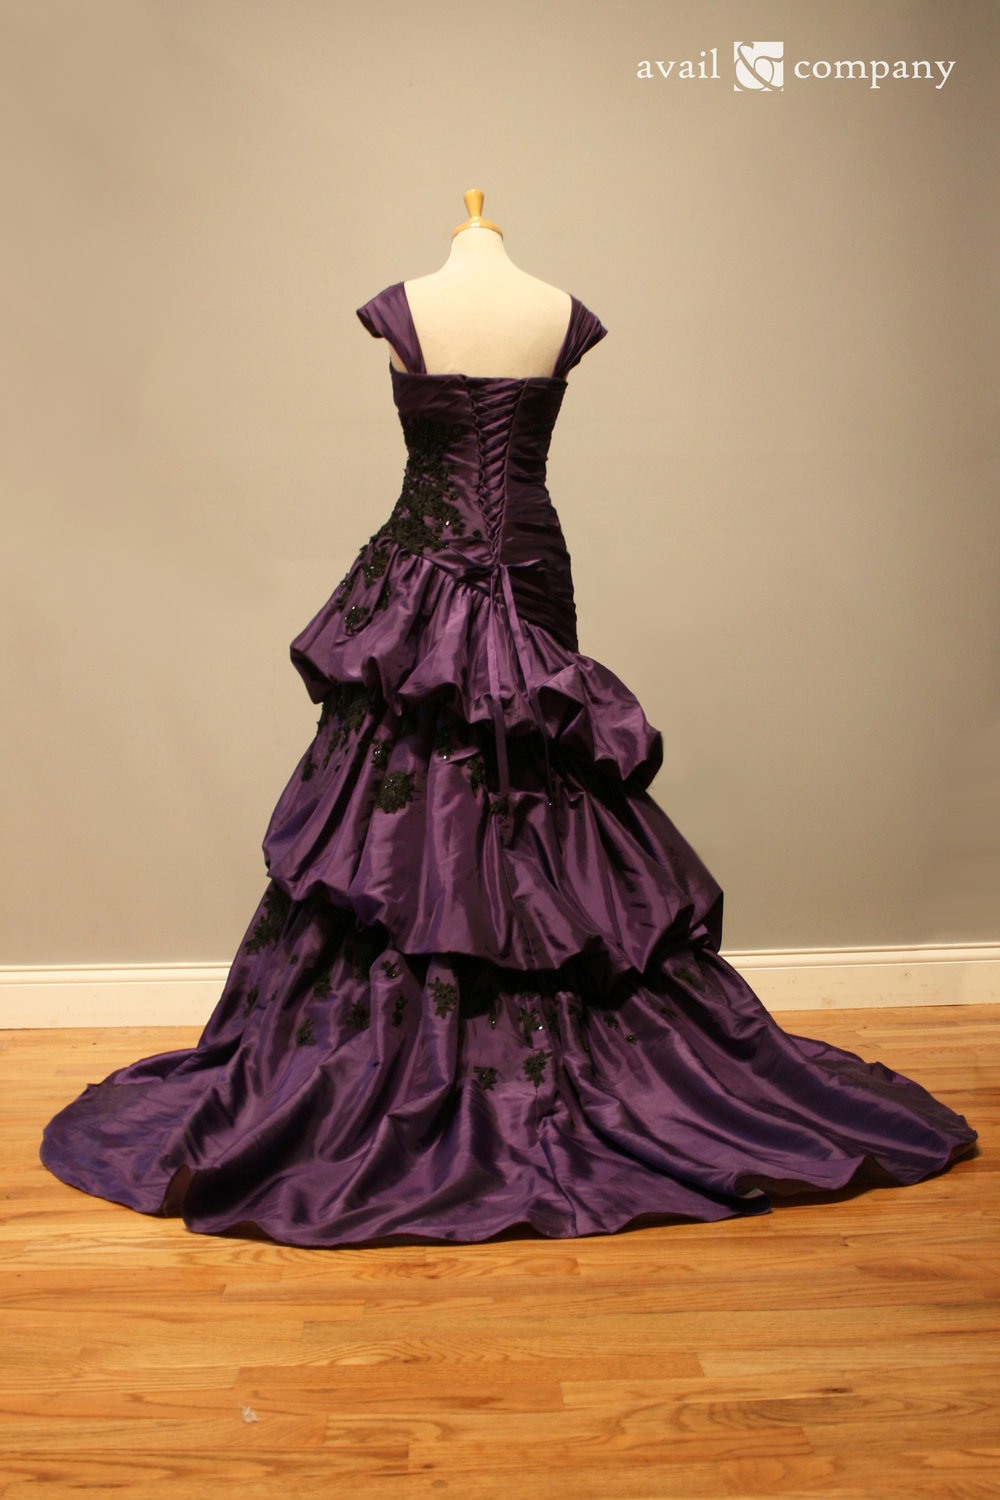 Beautiful offbeat purple colored wedding dress. — Avail & Company